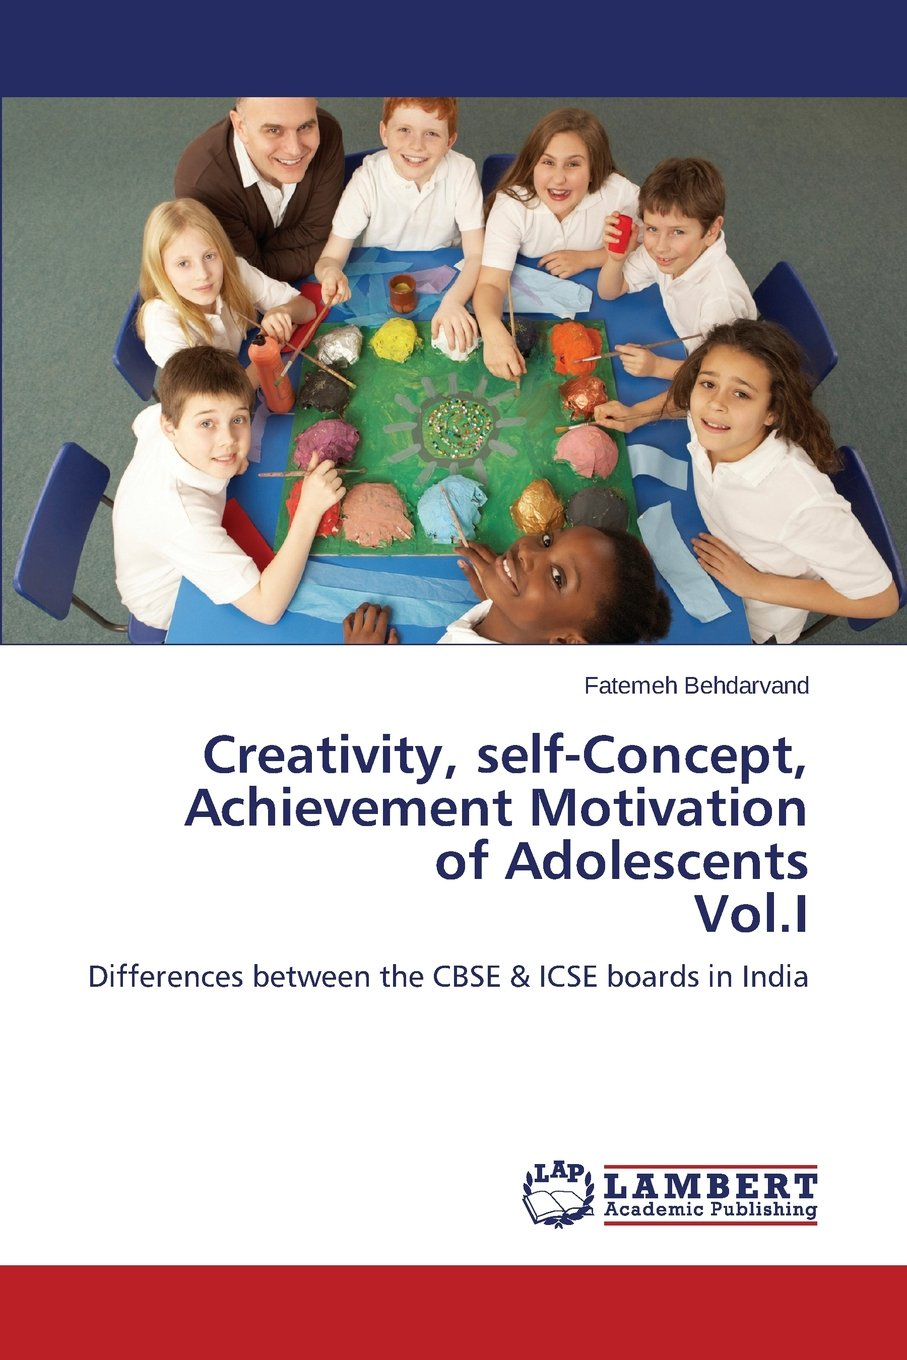 Creativity, self-Concept, Achievement Motivation of Adolescents Vol.I PDF